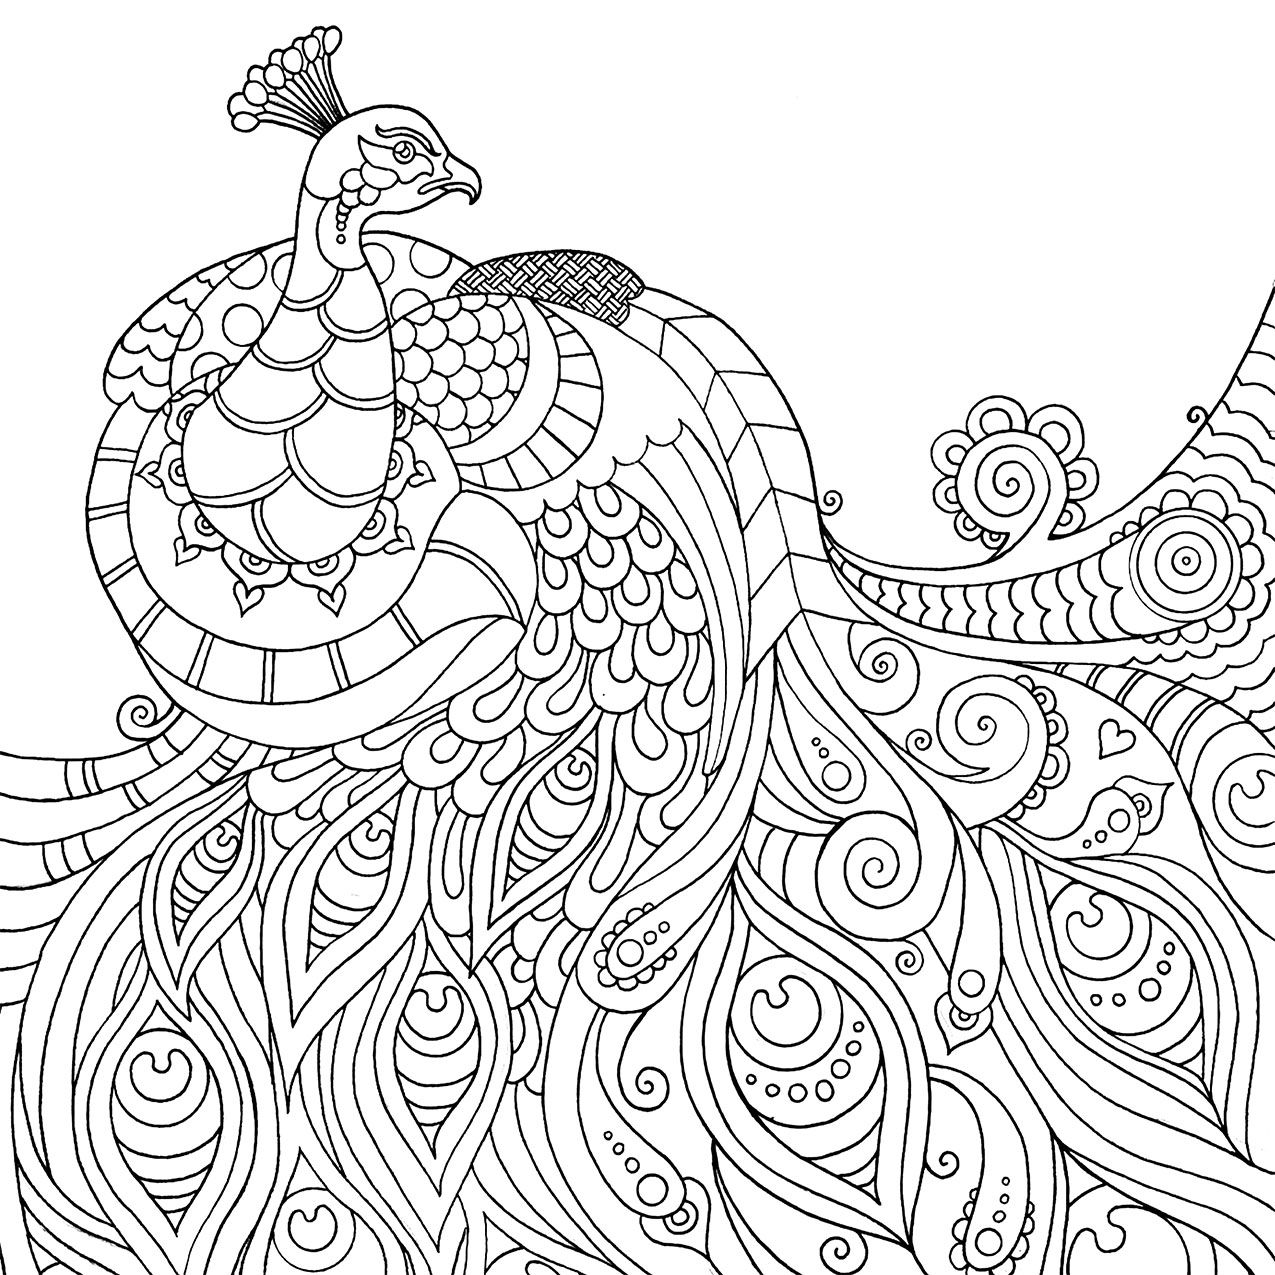 Mindfulness Coloring Pages Best Coloring Pages For Kids In 2020 Peacock Coloring Pages Mandala Coloring Pages Mindfulness Colouring